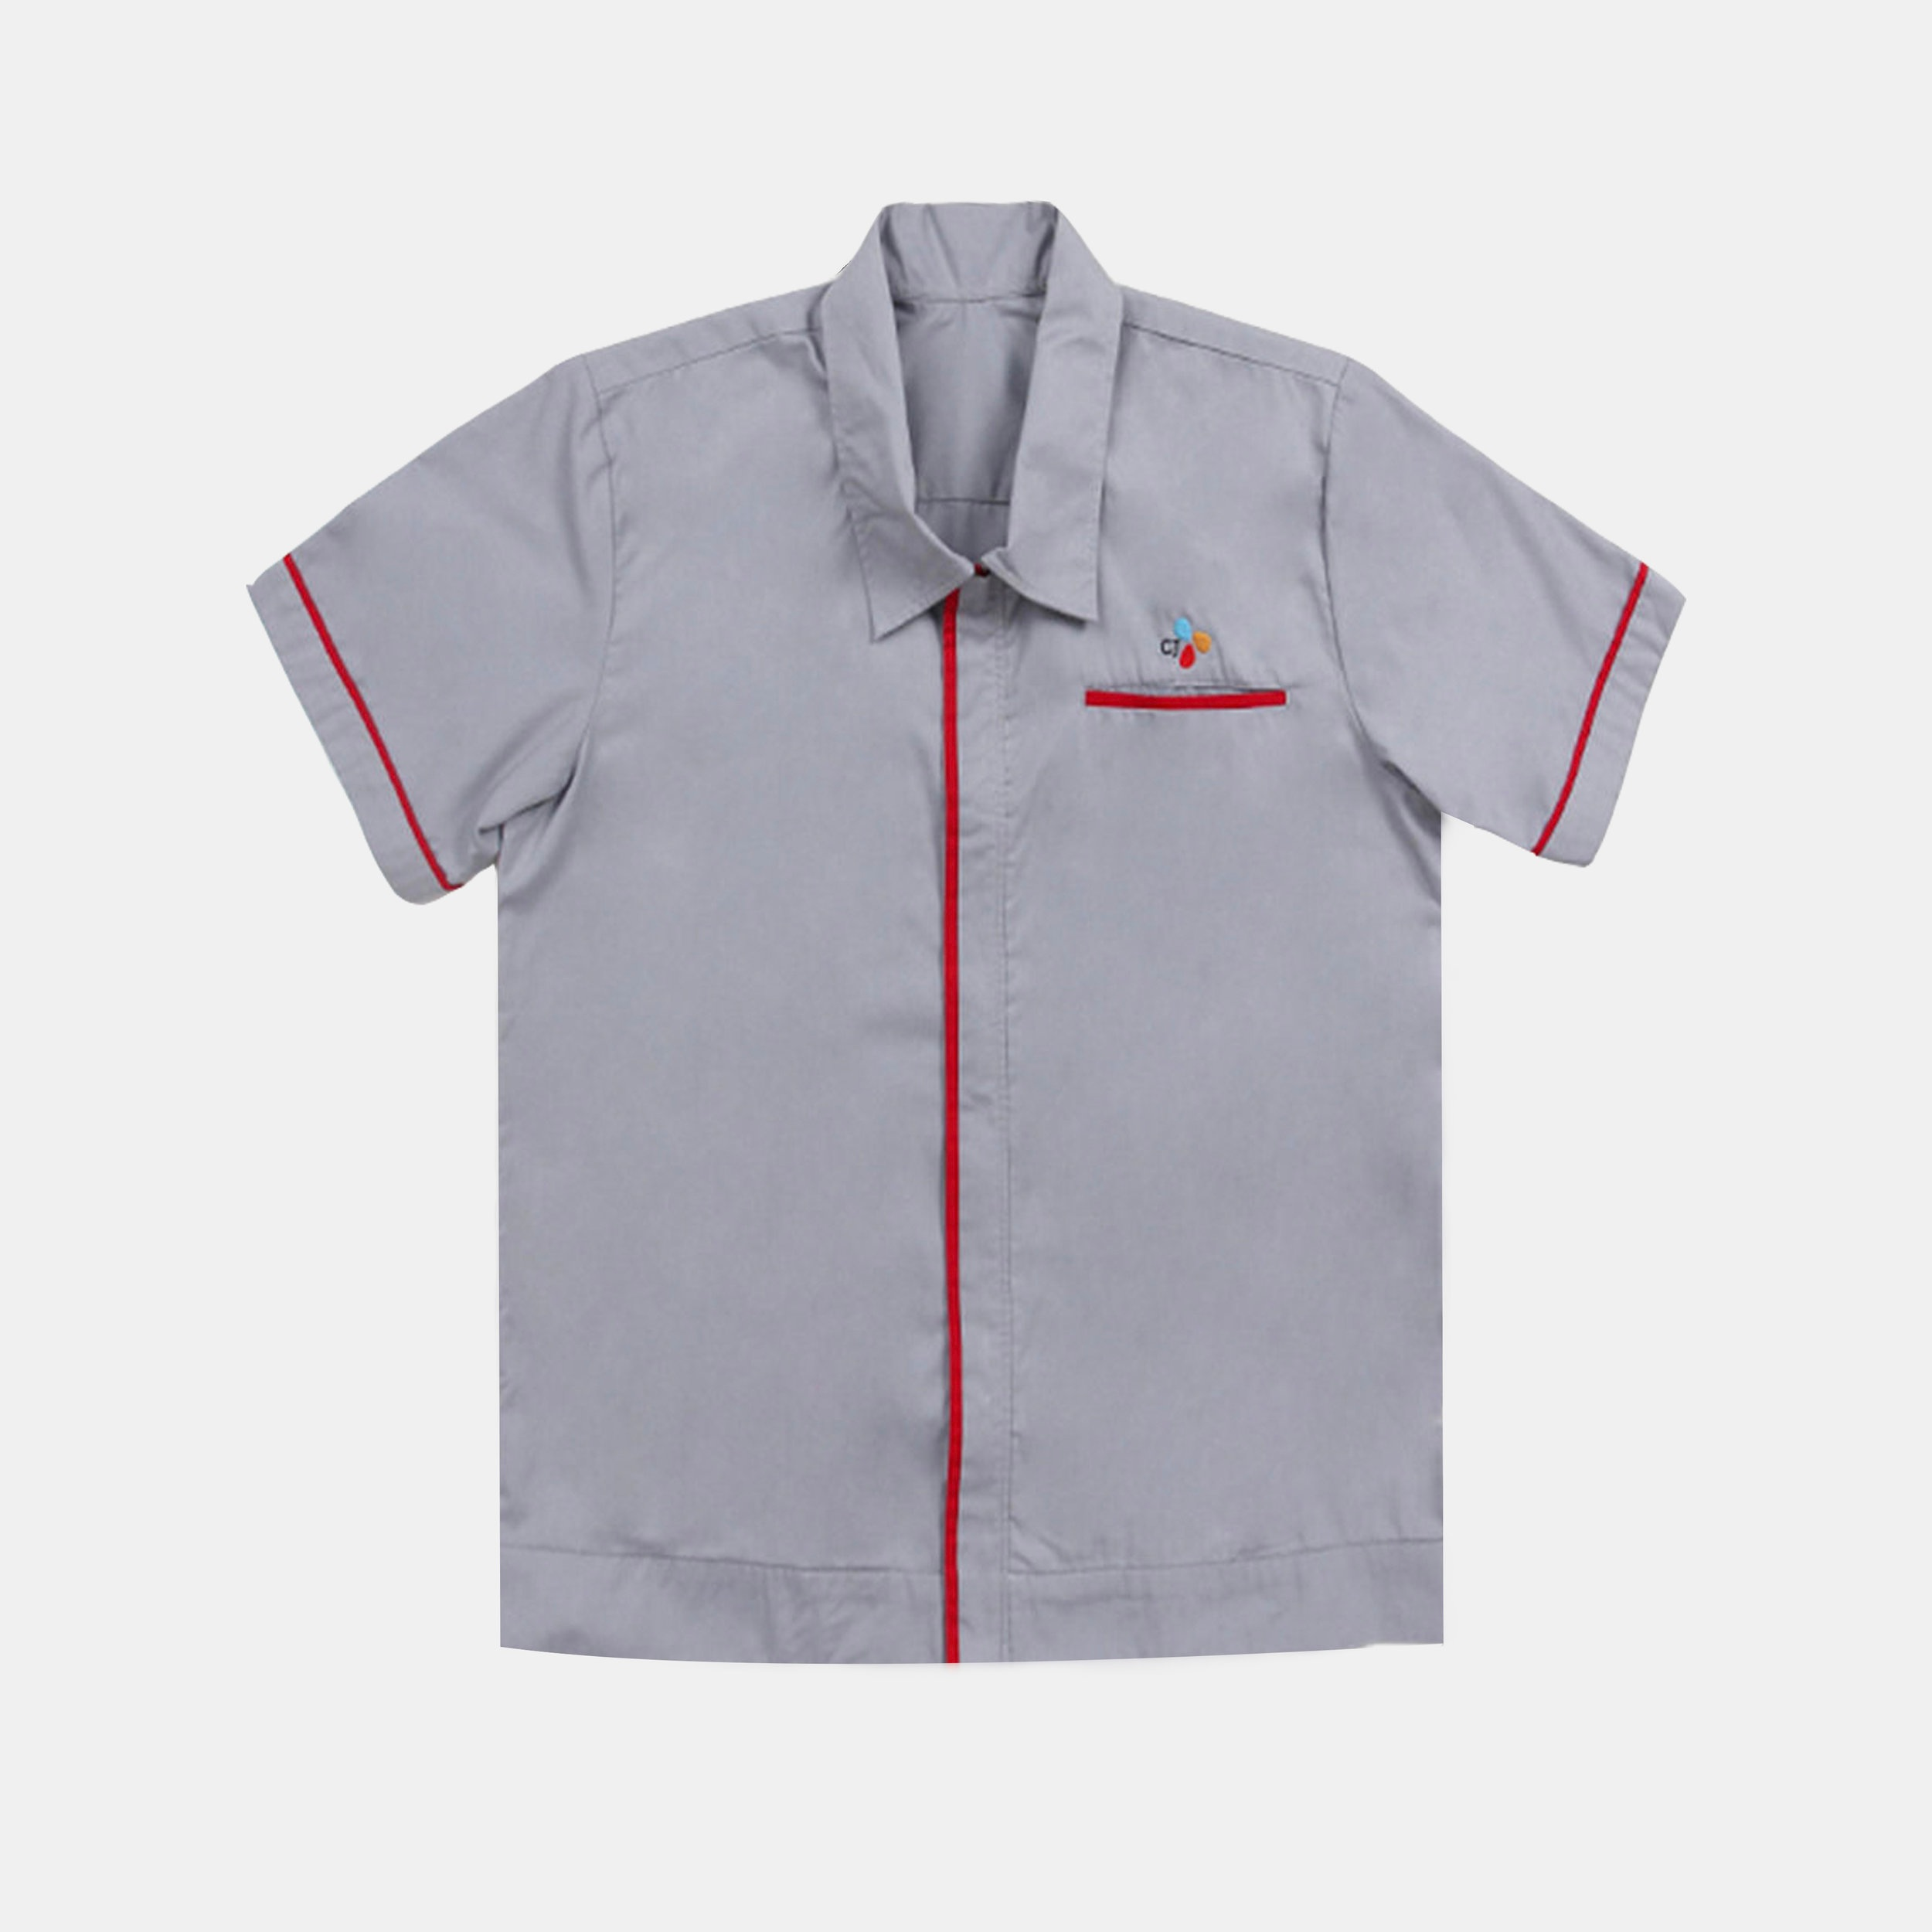 CJ   Fabric used: Lacoste 45  Custom Application: Embroidery